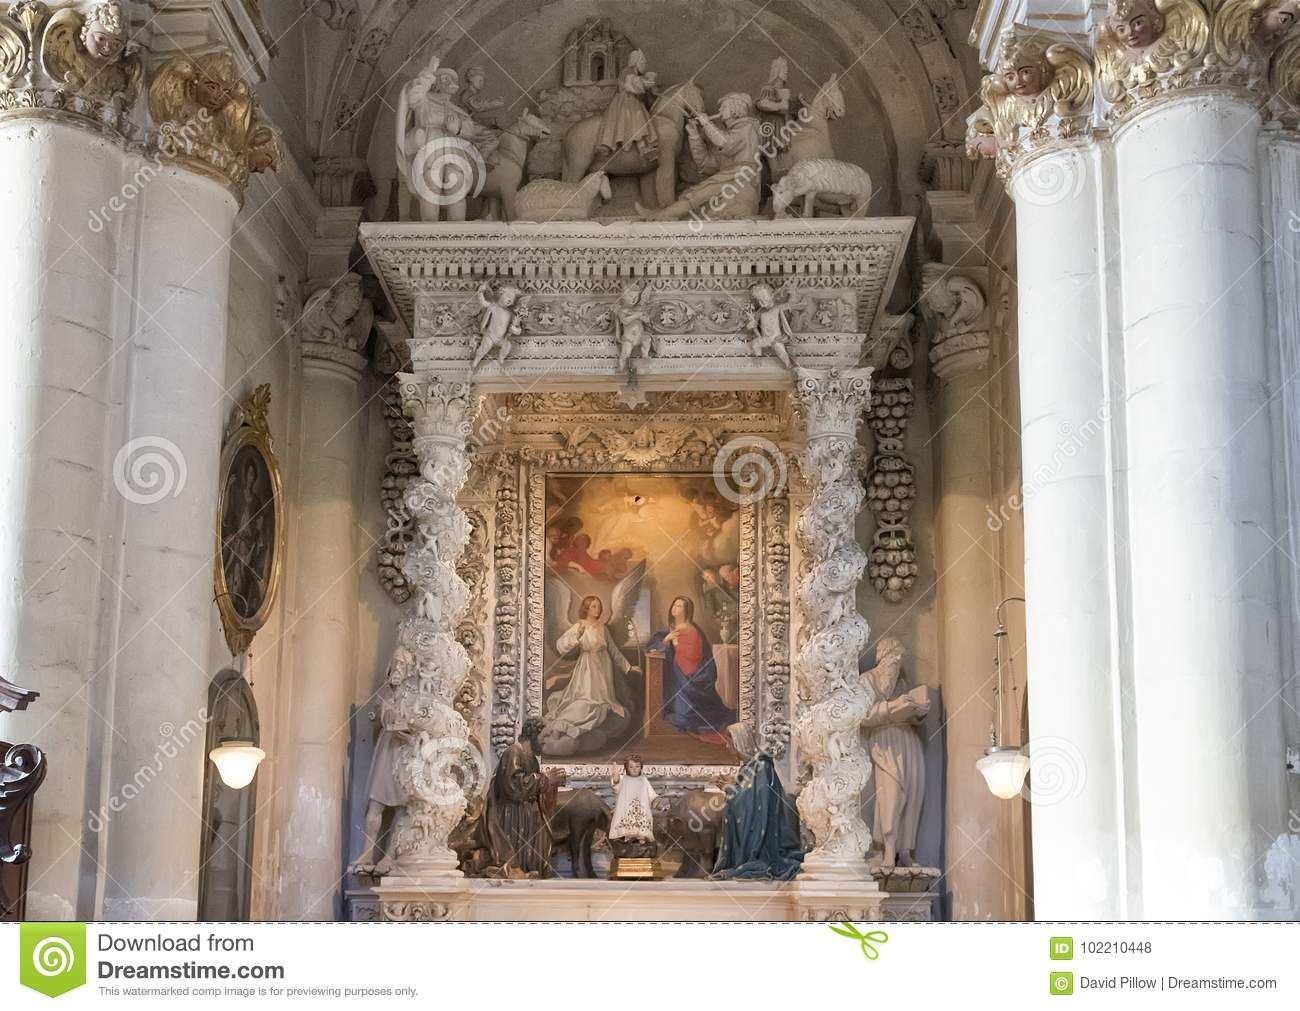 Side Altar of the Duomo Cathedral in Lecce, with a picture of the assumption